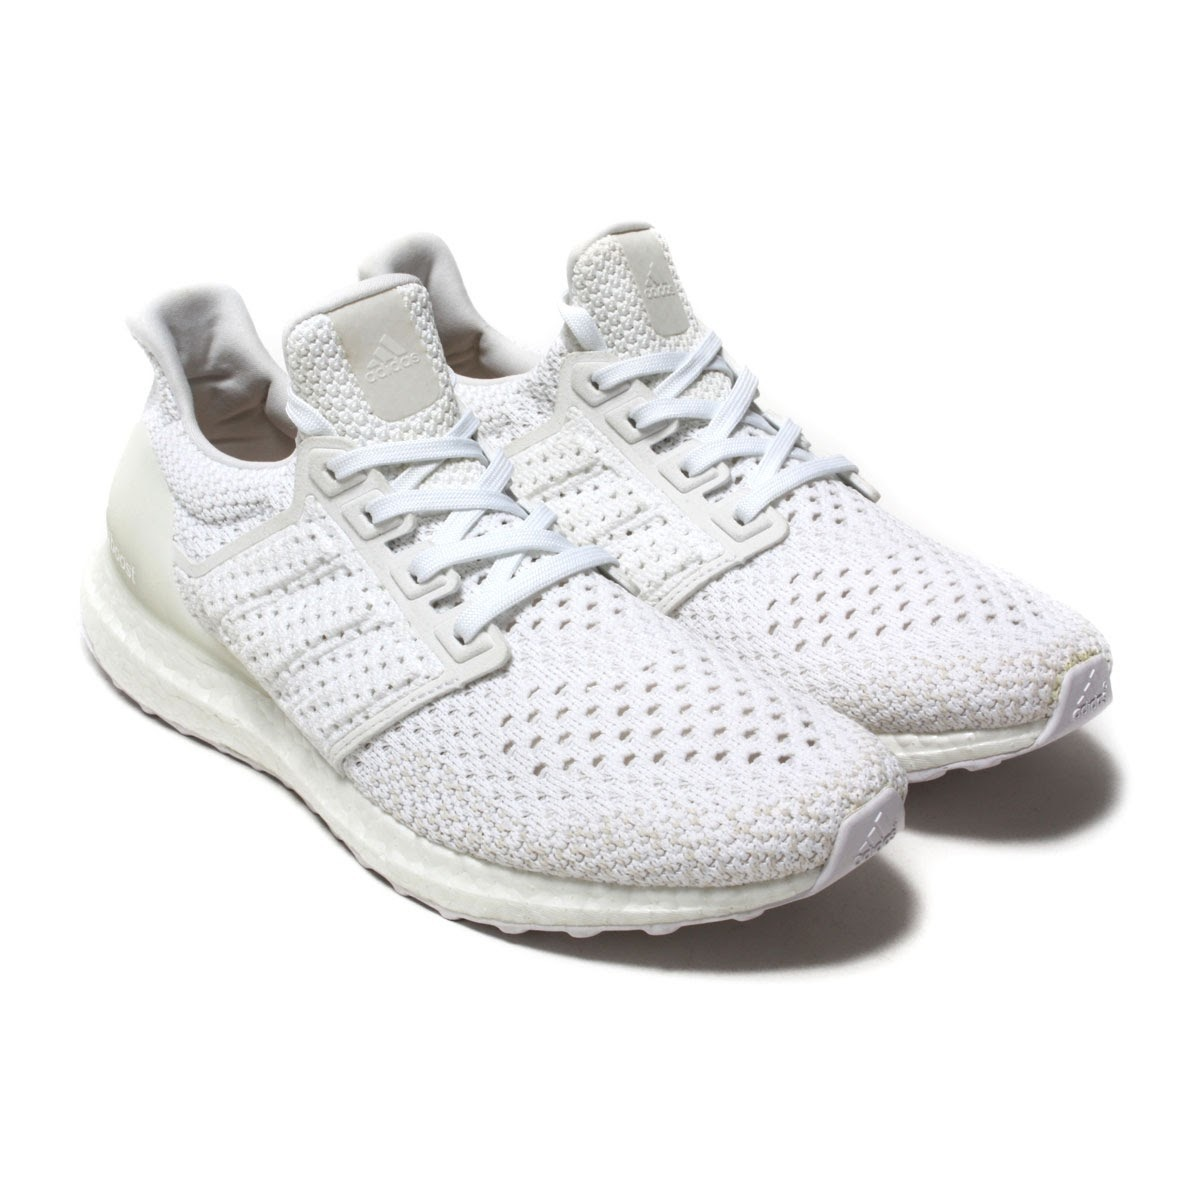 super popular ecbed 50ea2 Tenis Ultra Boost Clima adidas Correr Running Crossfit -   2,499.00 ...